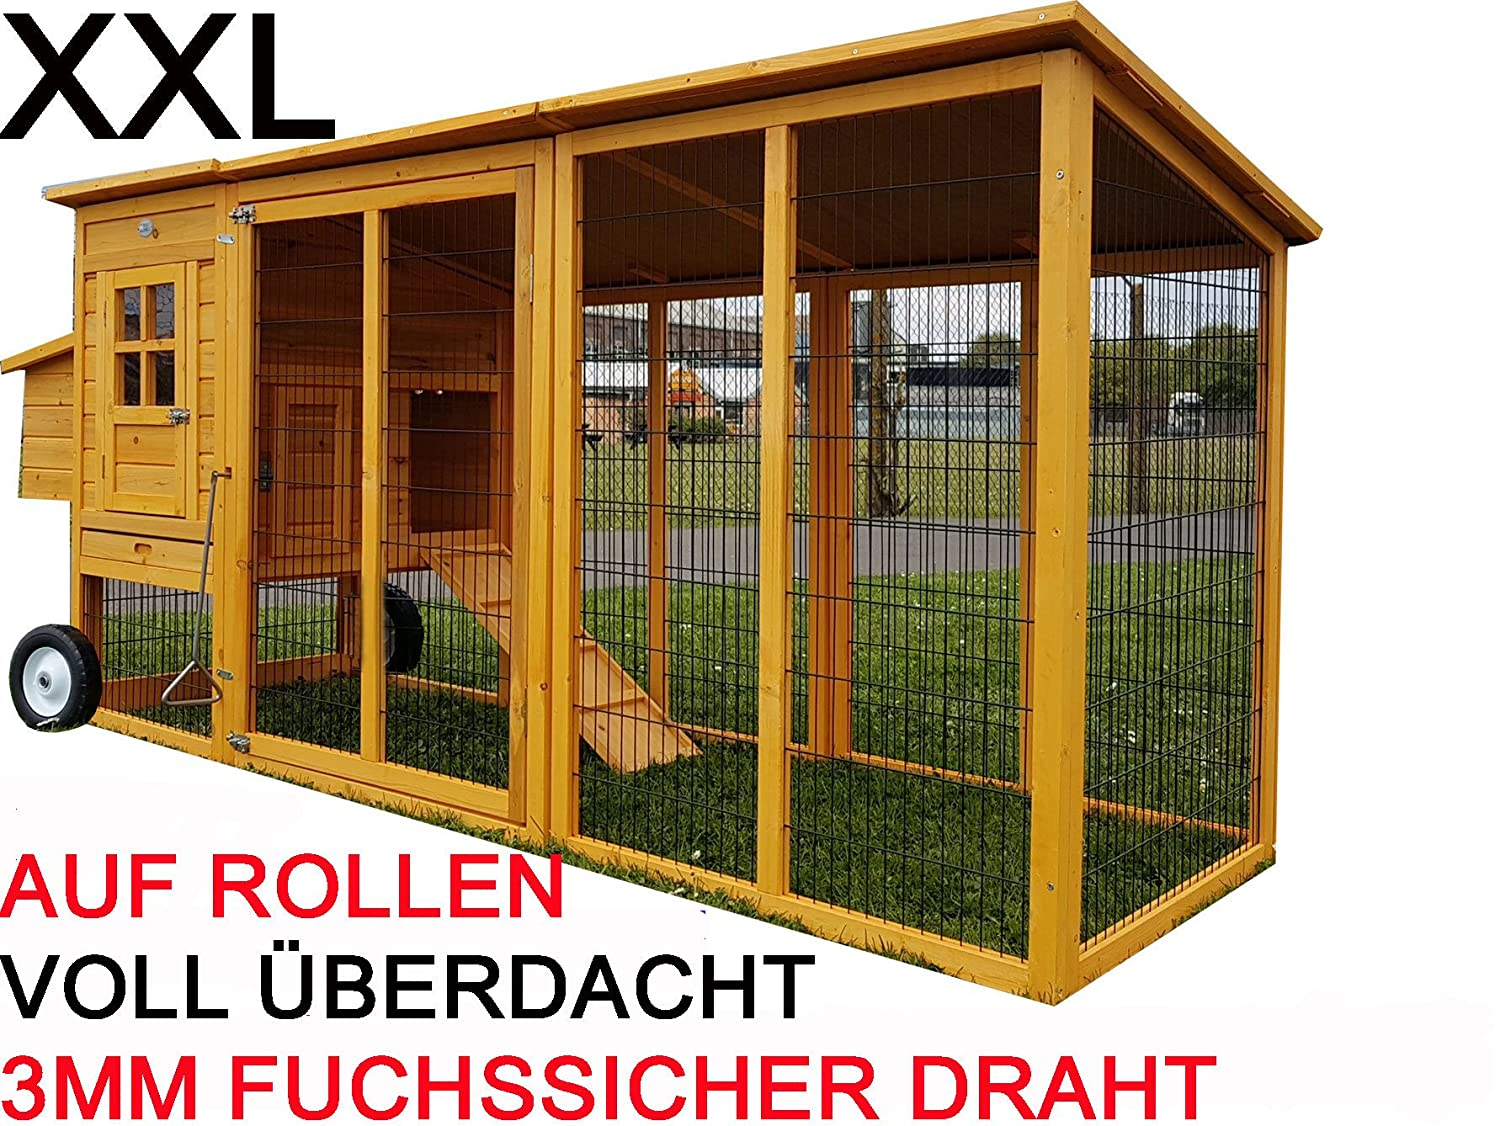 Large XXL Eggshell Buckingham Portable 8ft 100% Fox Proof 3mm Welded & Coated Wire Chicken Coop Hen House Movable on Wheels with Opening Roof Ark Poultry Run Nest Box Rabbit Hutch 2 to 4 birds (NO SHIPING TO NORTHERN IRELAND, ISLANDS, SCOTTISH HIGHLAN